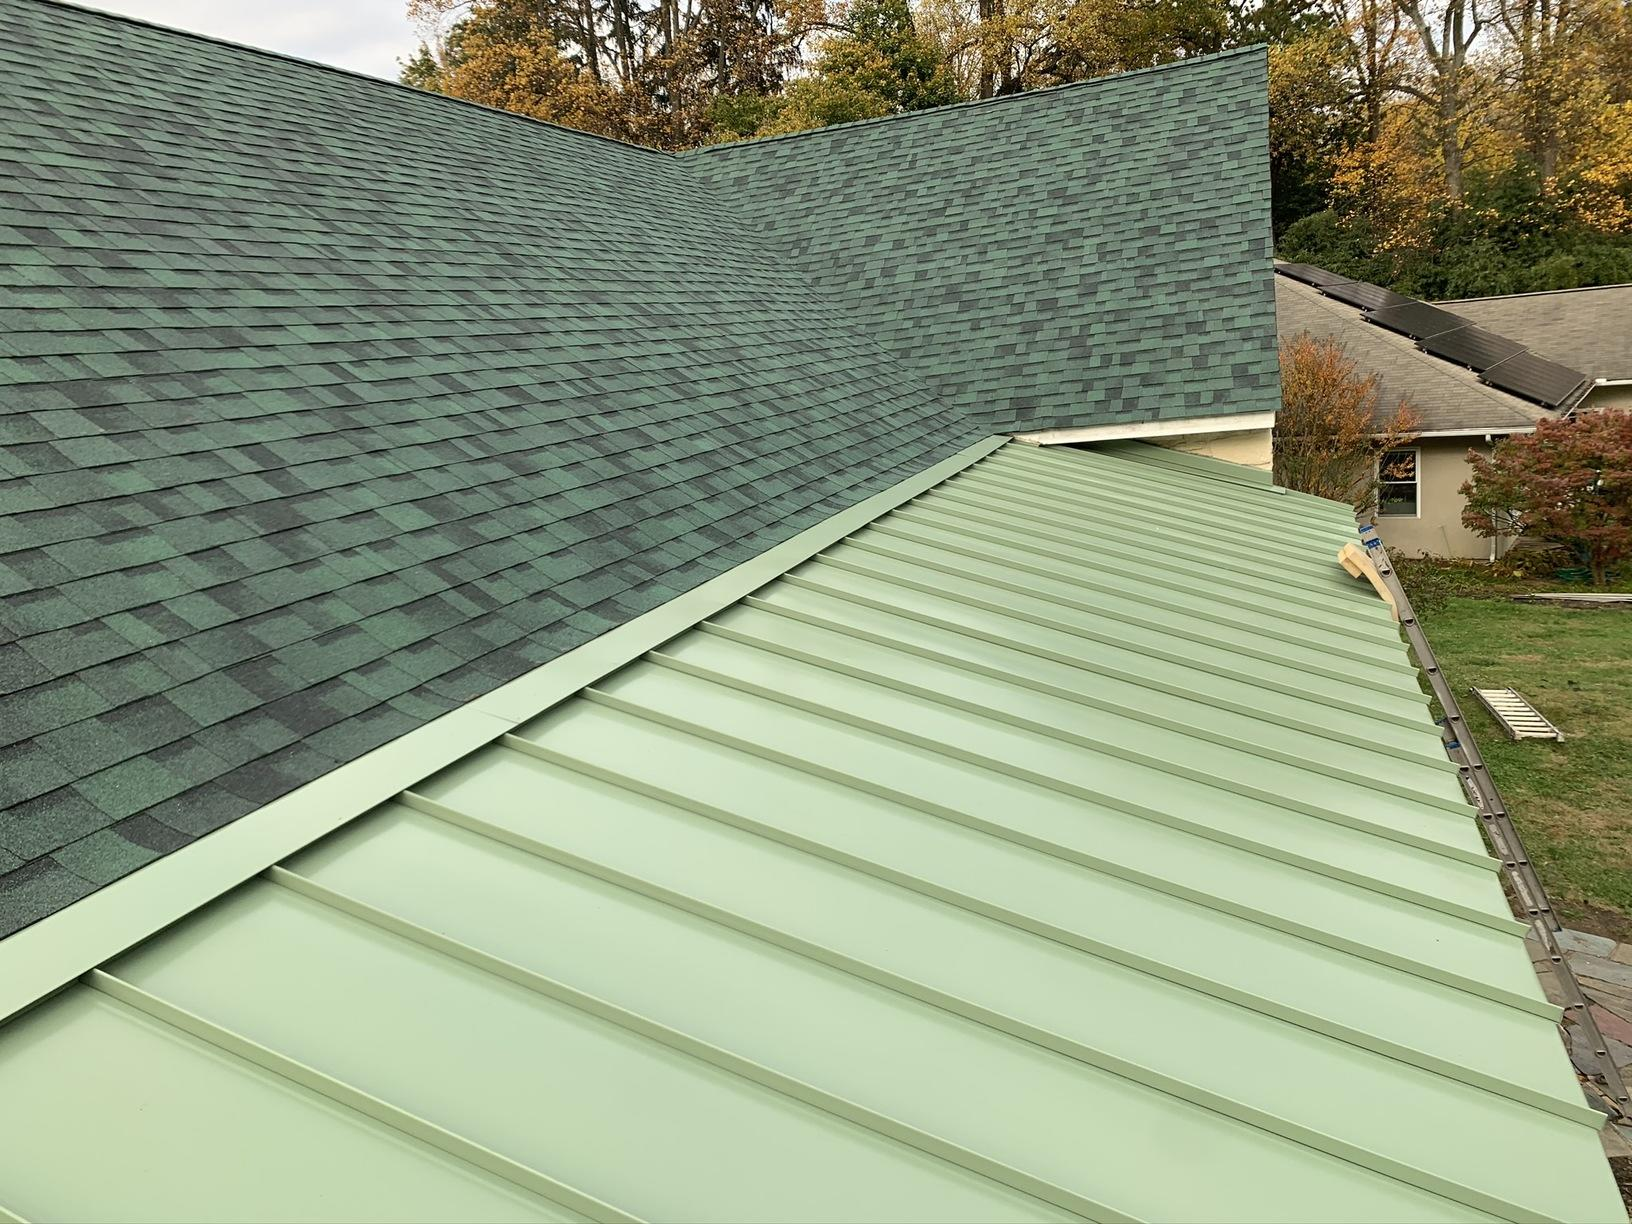 Metal Roofing October 2019 New Roof Install In Paoli Pa